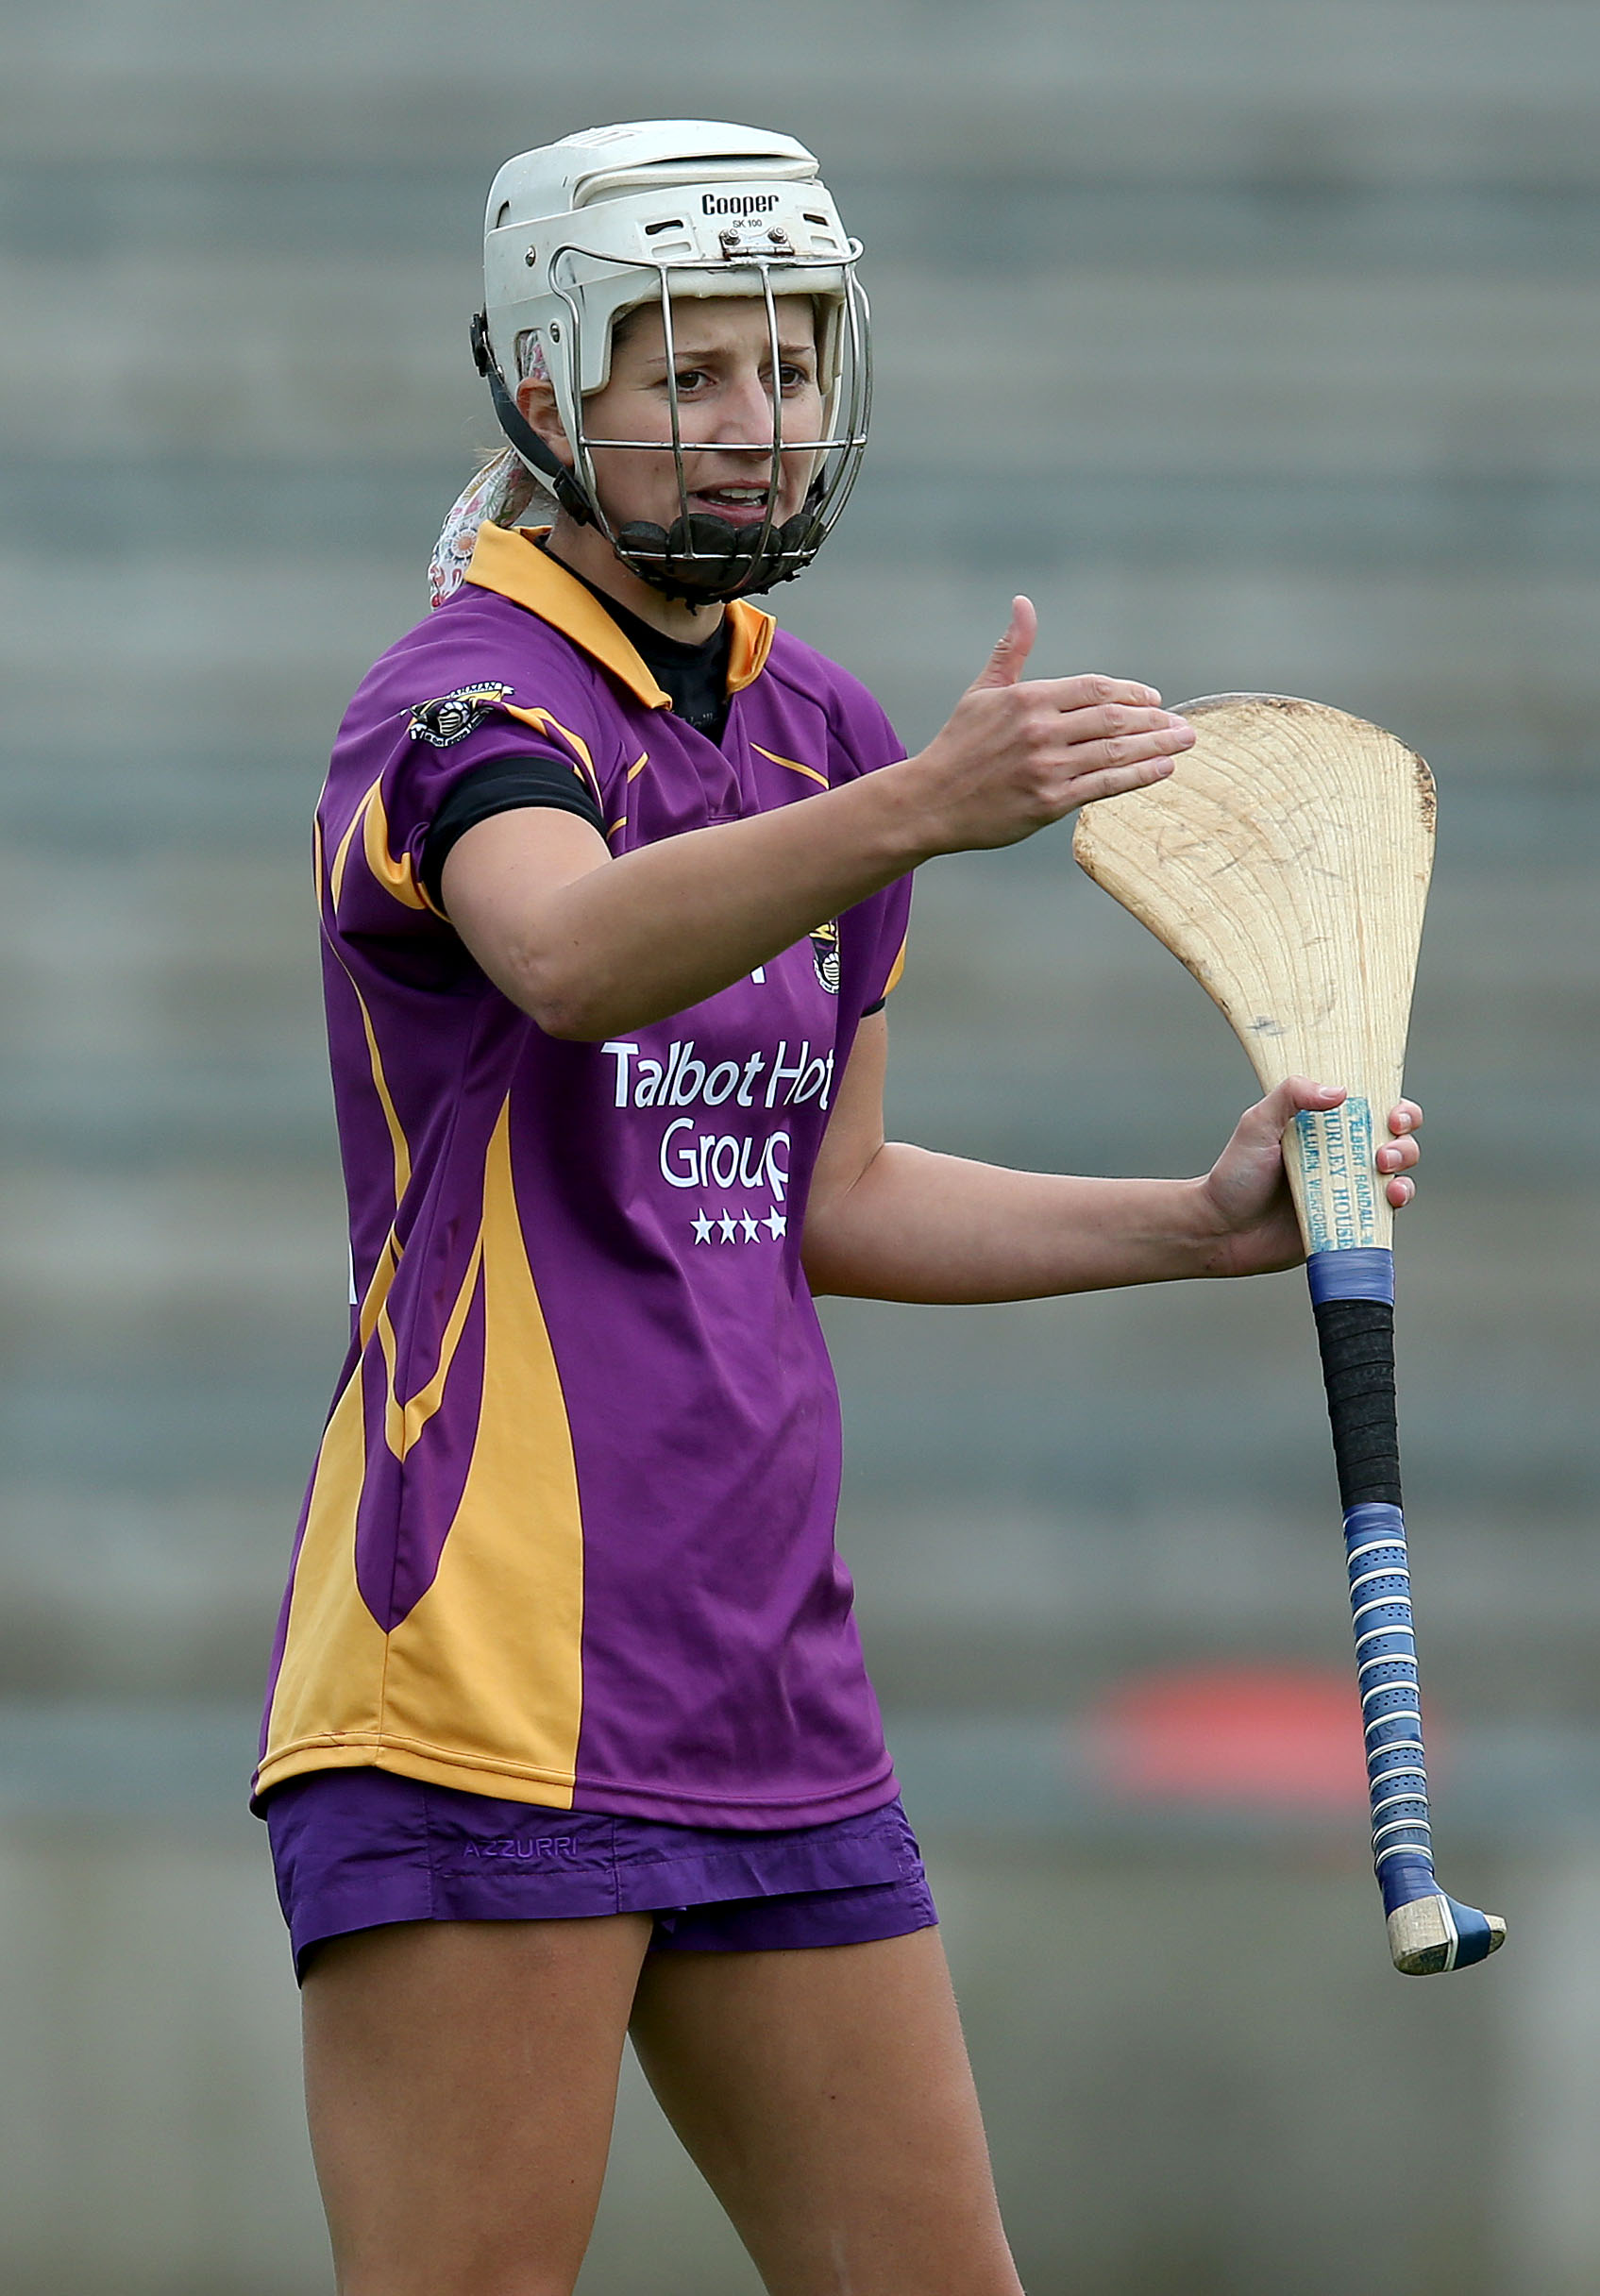 REPRO FREE***PRESS RELEASE NO REPRODUCTION FEE*** Liberty Insurance All Ireland Camogie Championship Group 1, 5/7/2014 Wexford Goalkeeper Mags Darcy Mandatory Credit ©INPHO/Dan Sheridan